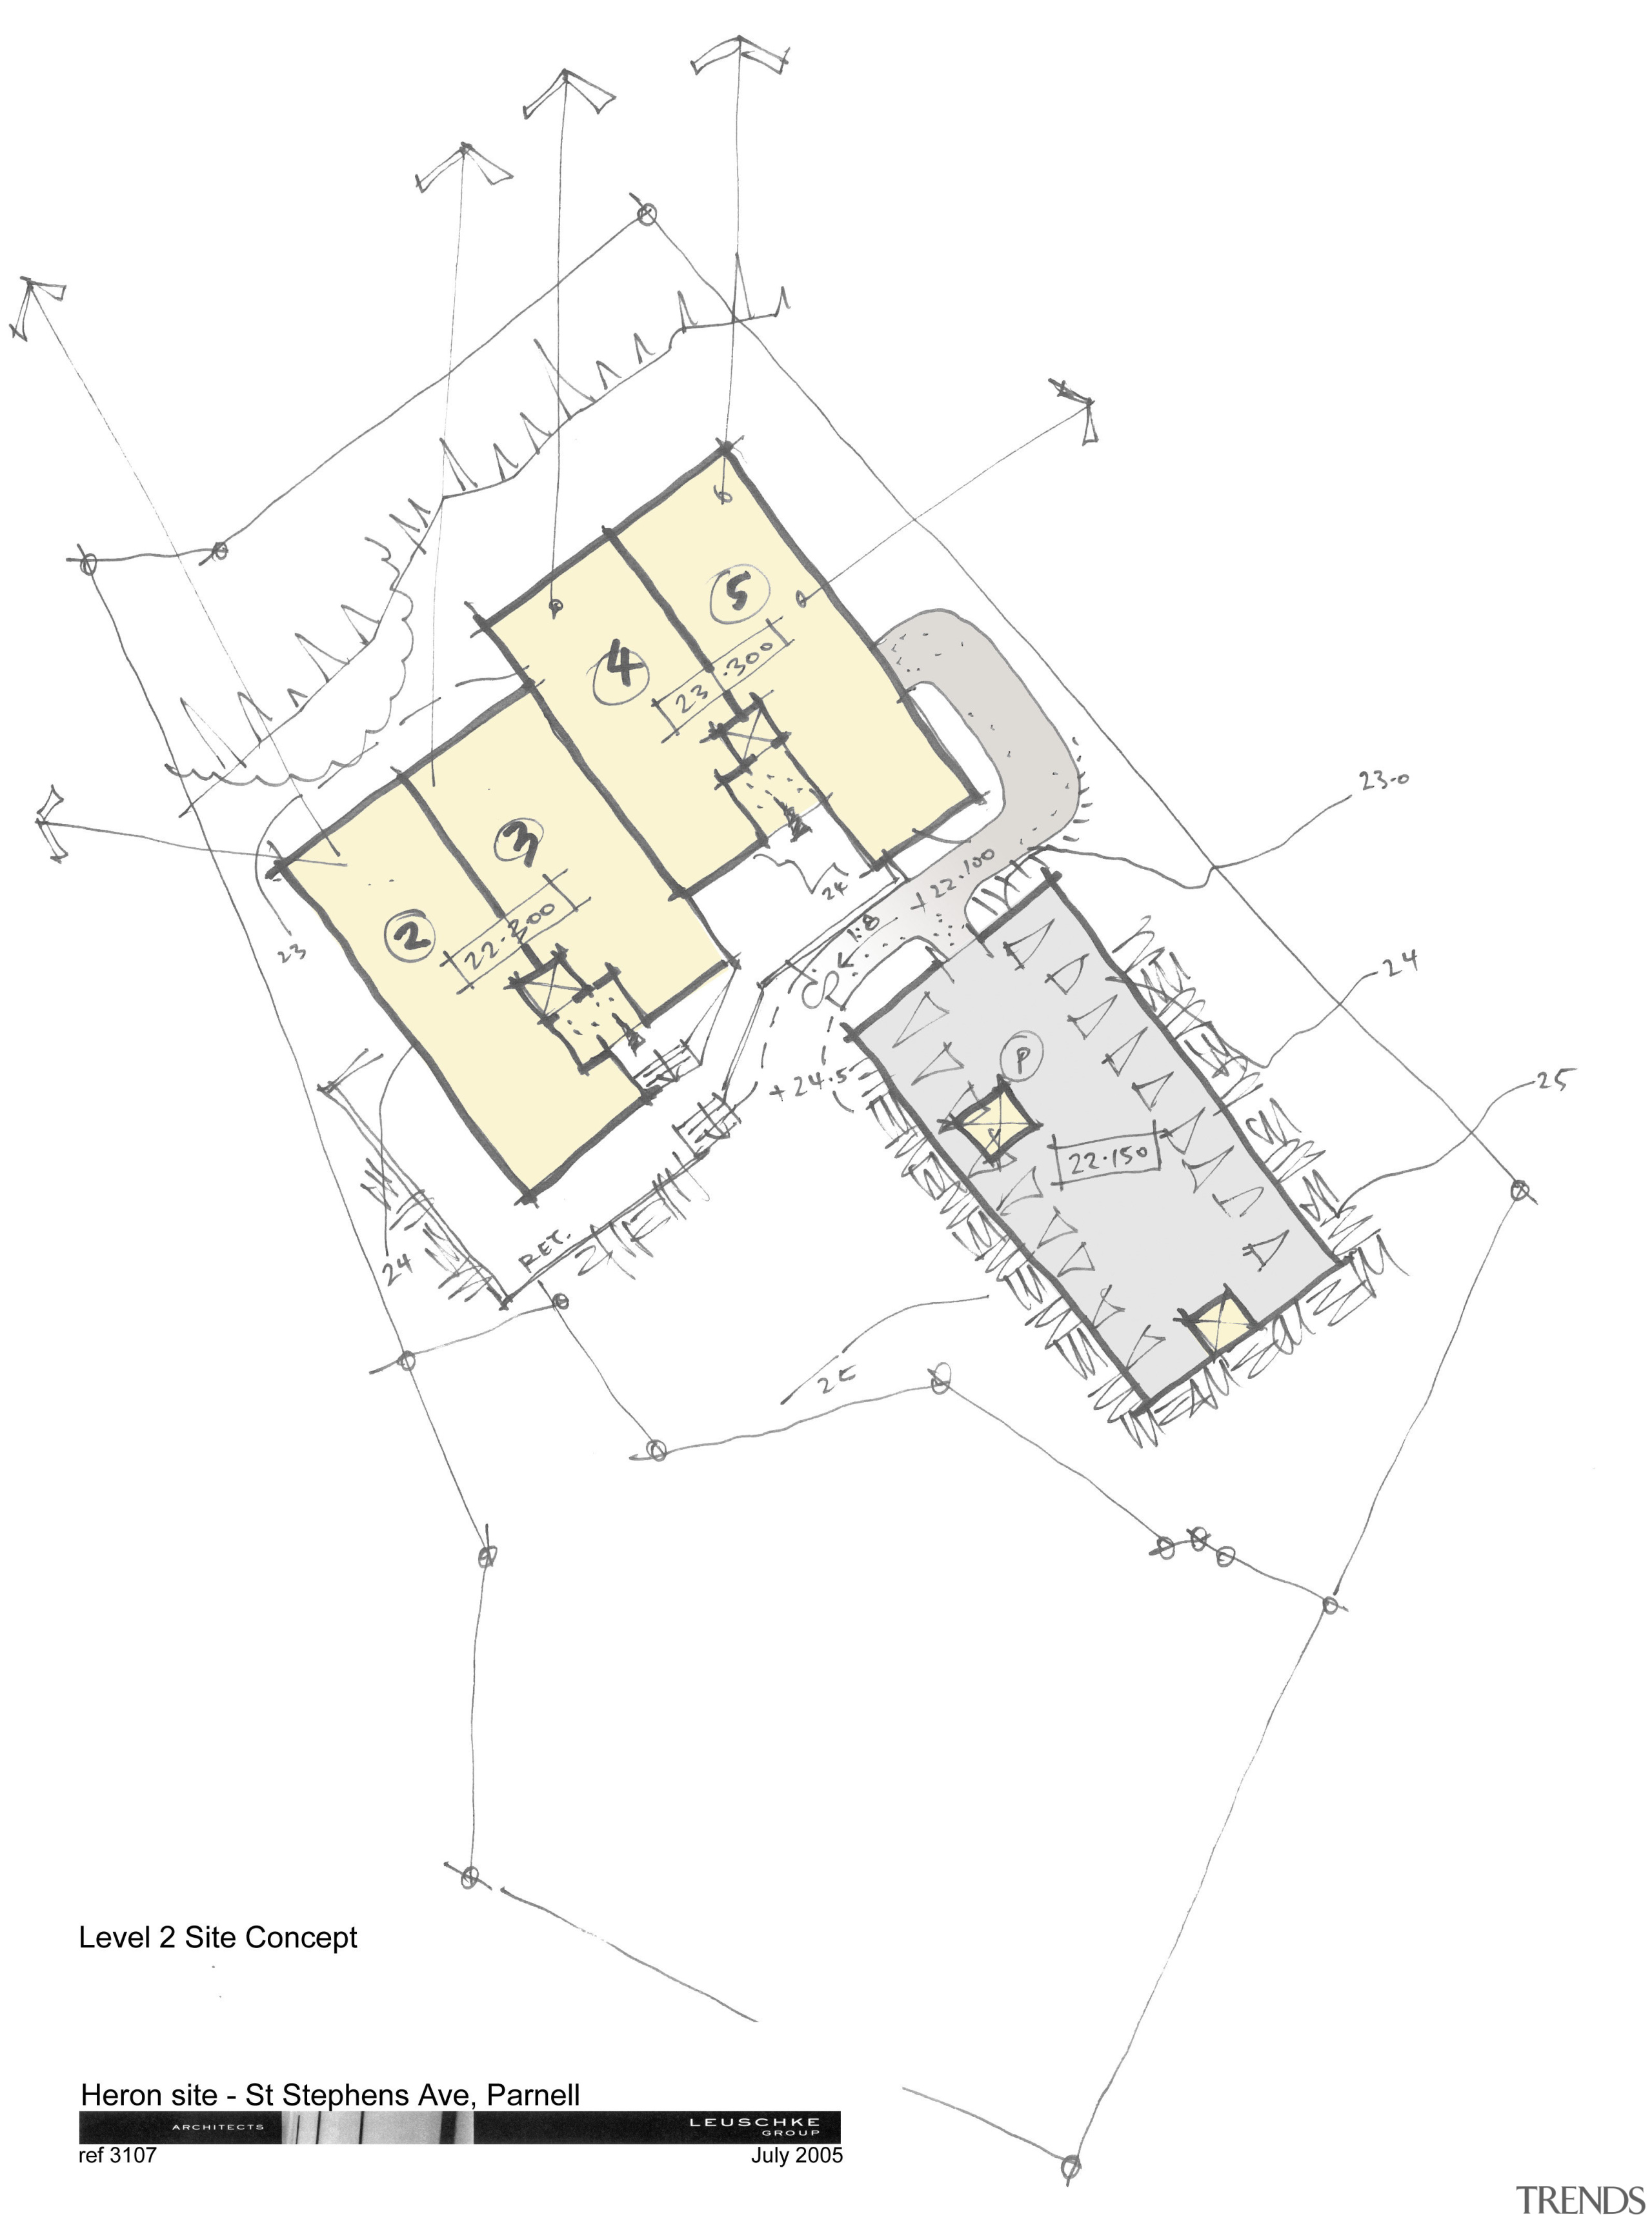 Image of architectural plans of a Parnell apartment angle, area, design, diagram, drawing, floor plan, line, plan, product design, white